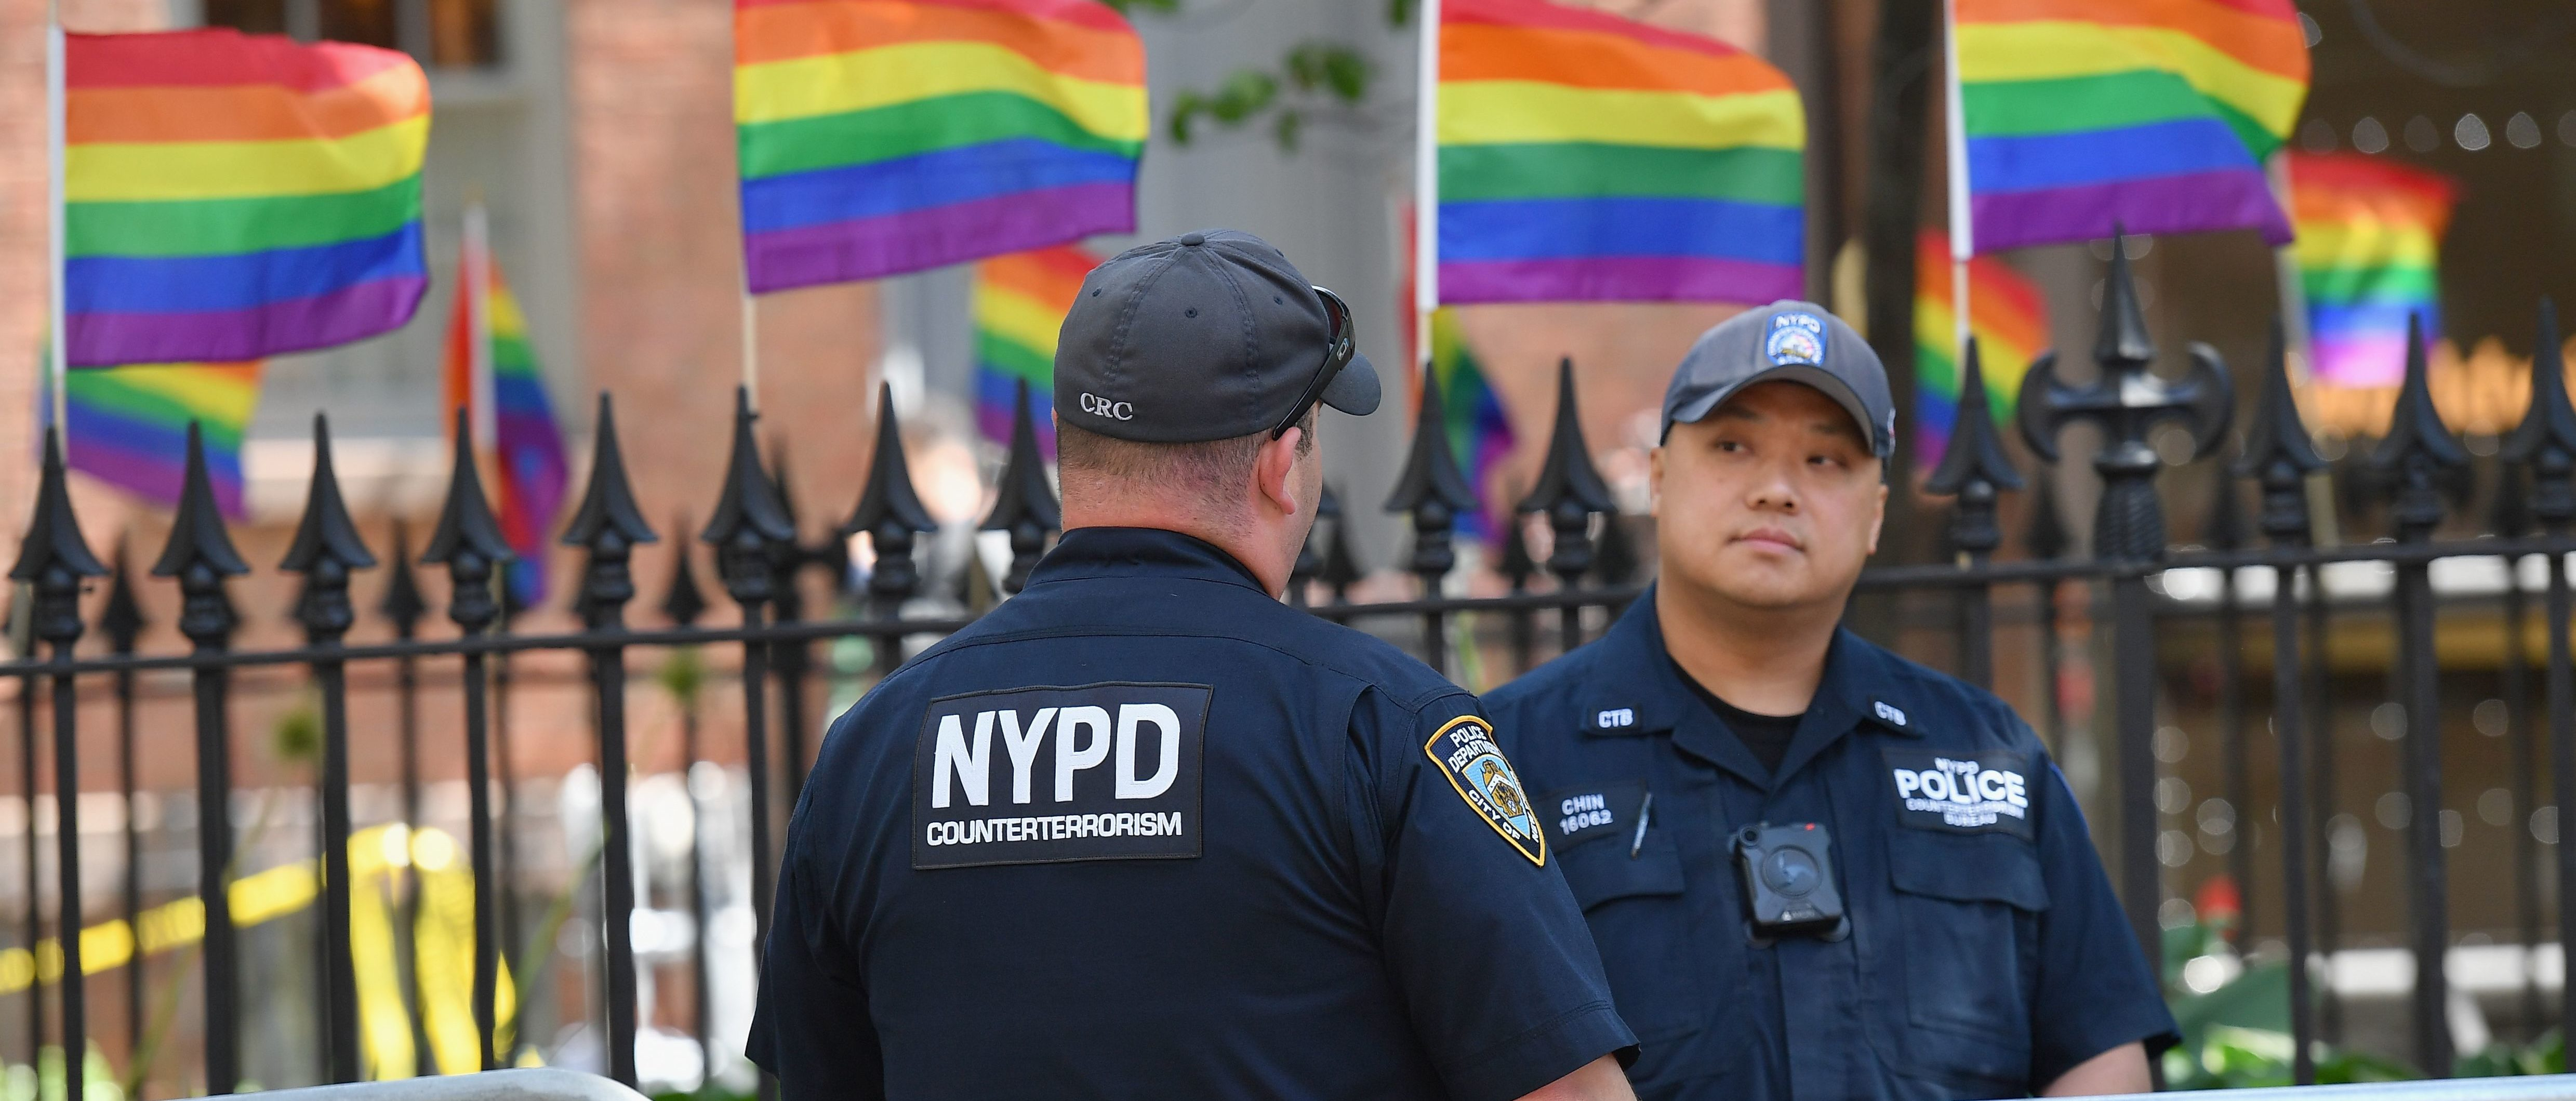 NYPD Has Not Substantiated A Single Report Of Biased Policing In 5 Years: Report